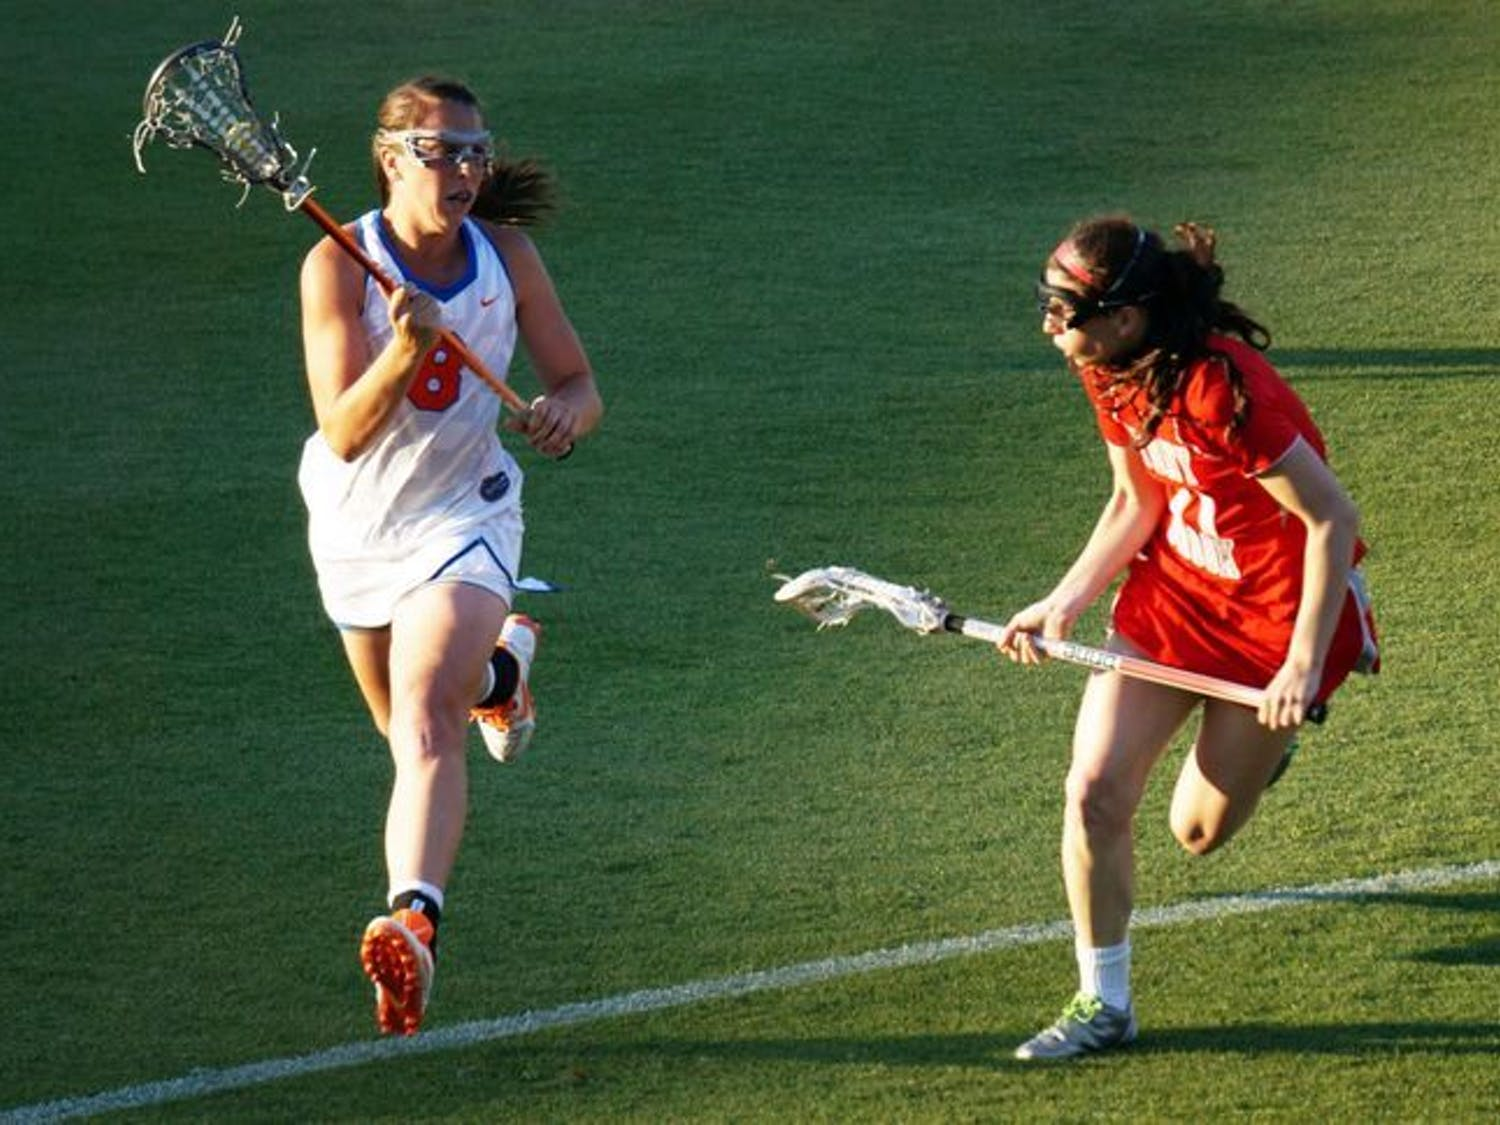 Shannon Gilroy runs toward the net during Florida's 12-11 loss to Stony Brook on March 17 at Donald R. Dizney Stadium. Gilroy scored two goals in Sunday's 11-6 loss to UNC.